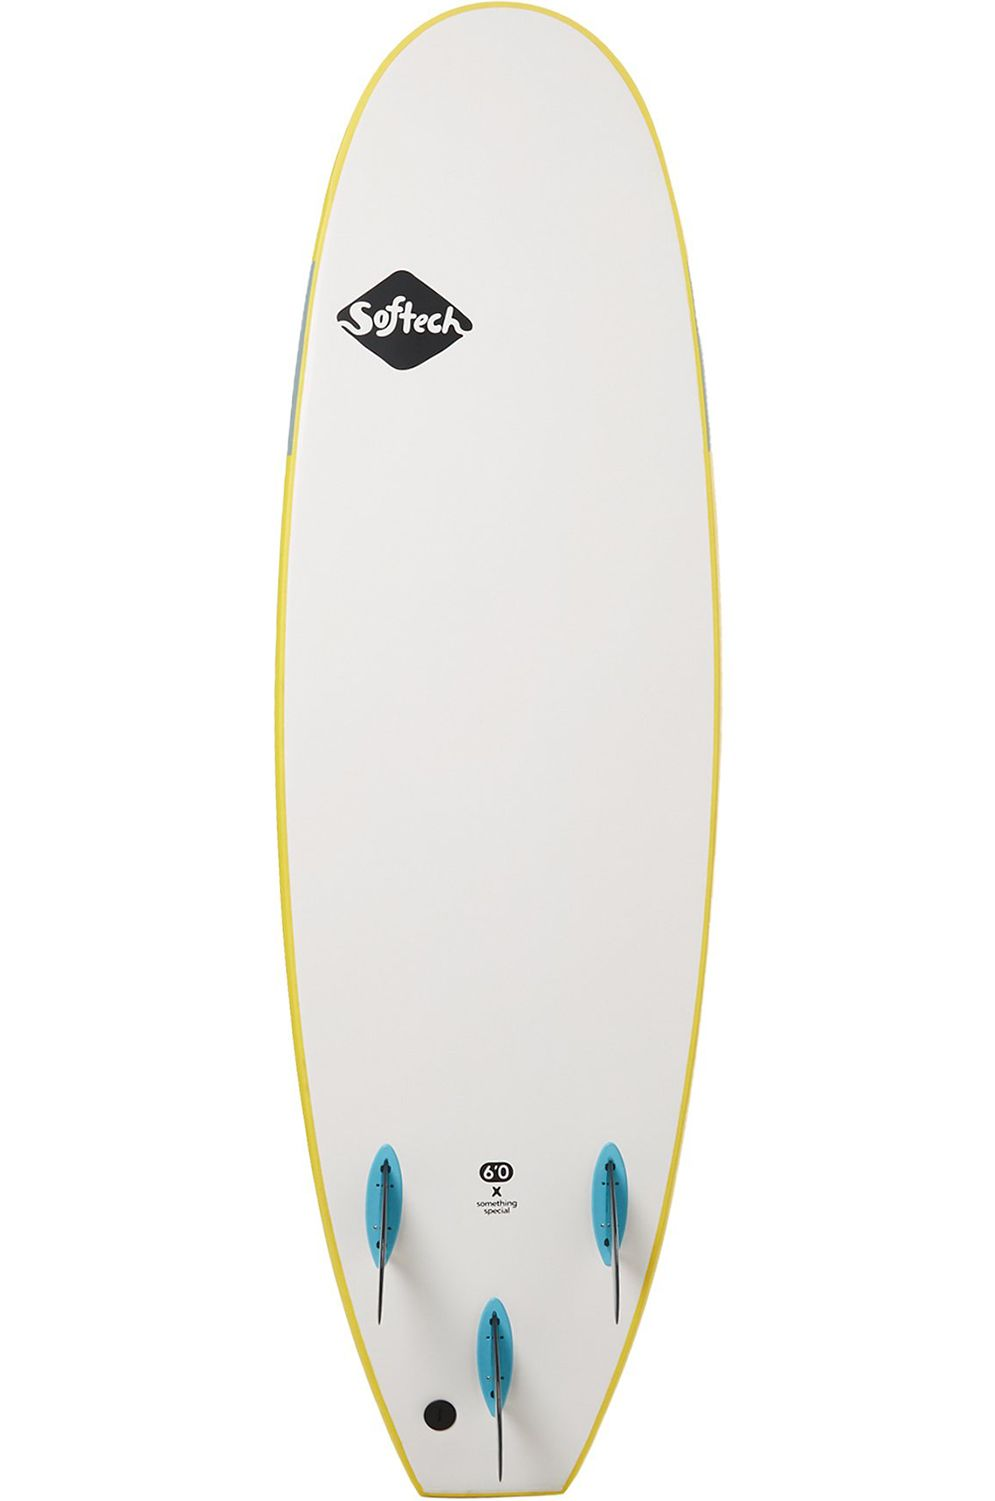 Prancha Surf Softech HANDSHAPED FB YELLOW 6'0 Squash Tail - Color FCS 6ft0